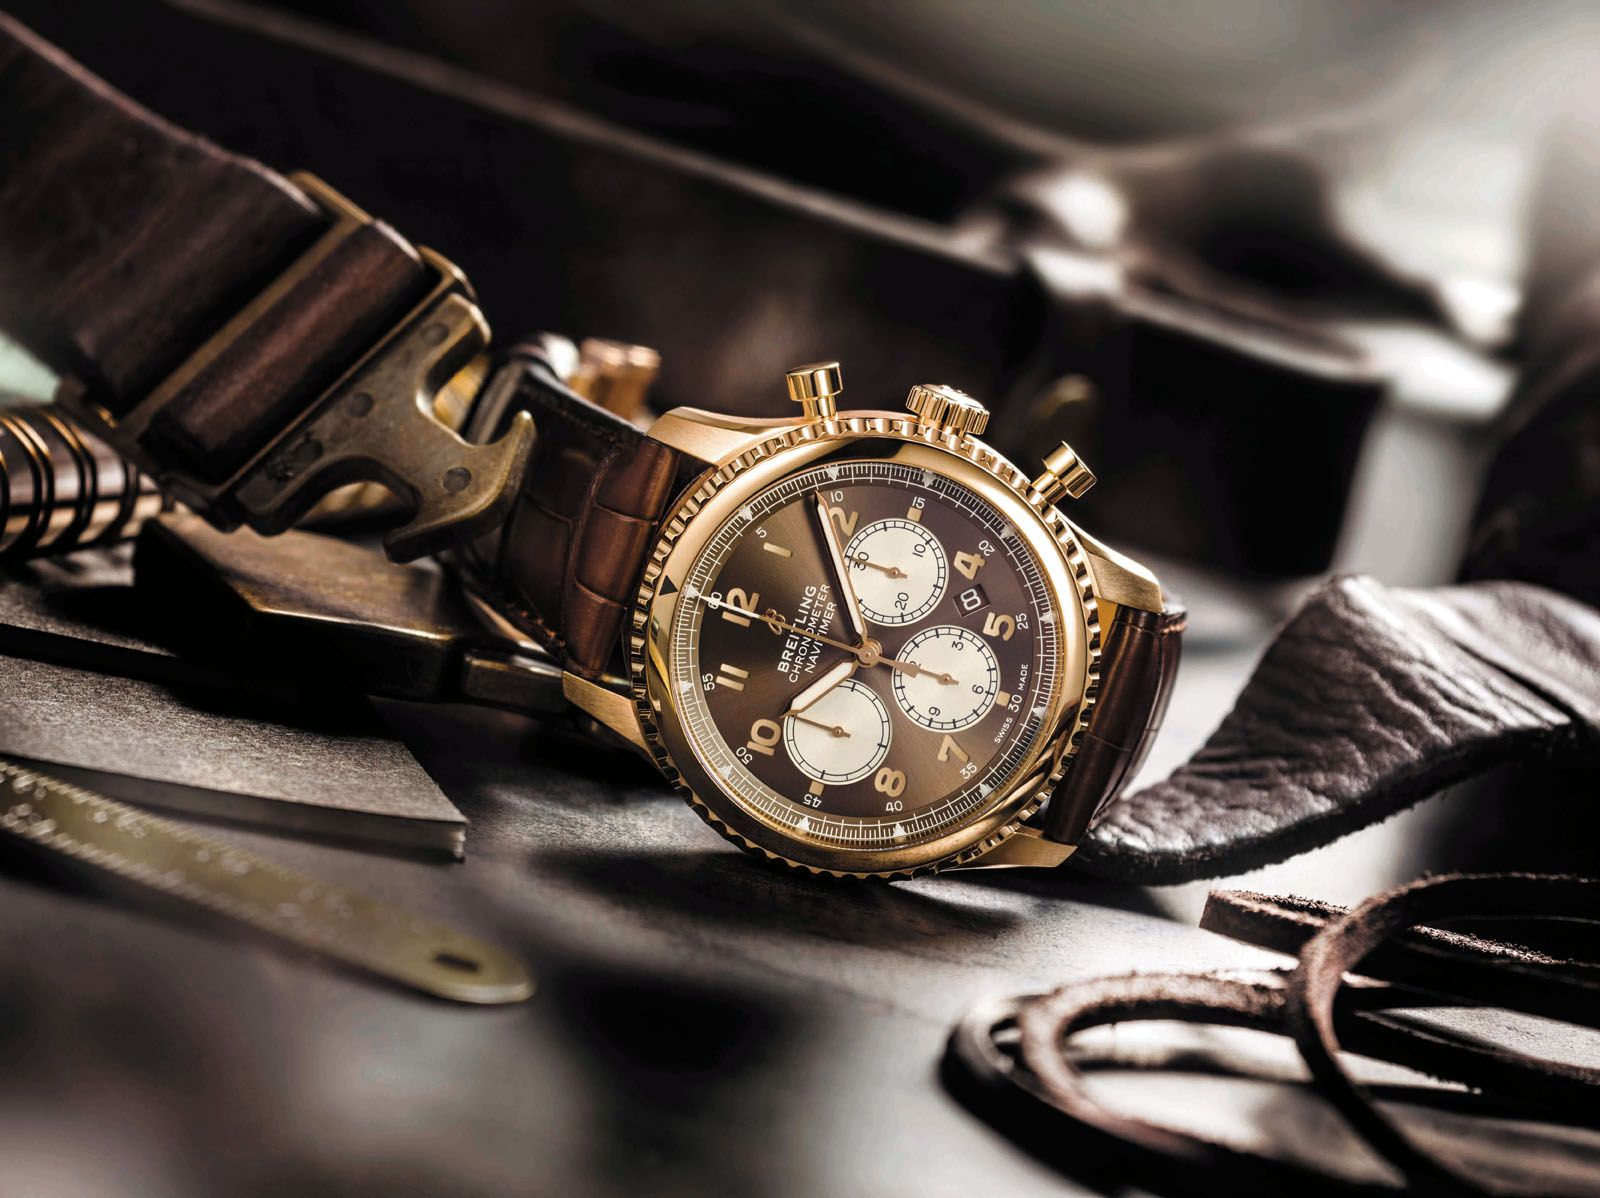 b6f6eb3f1efa3 15 Of The Most Popular Watches For 2018